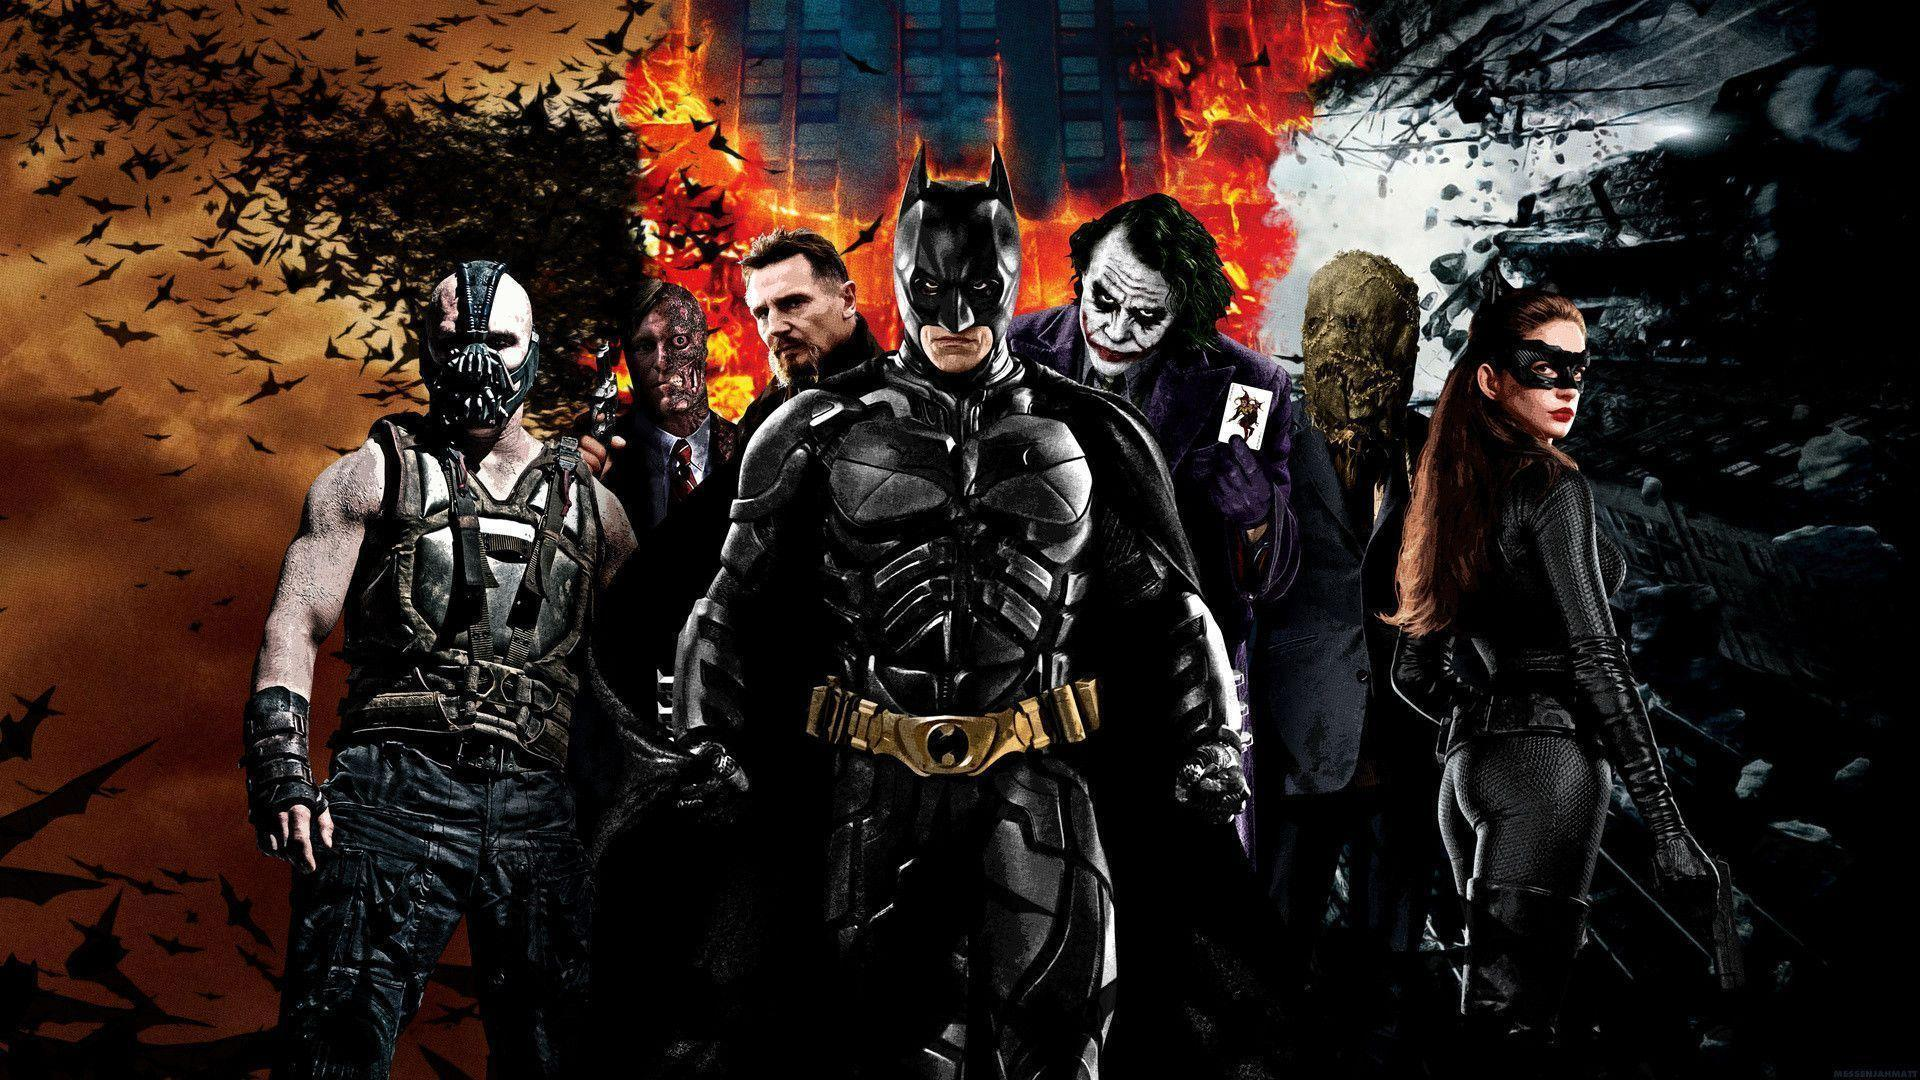 Batman Movie Characters Wallpaper